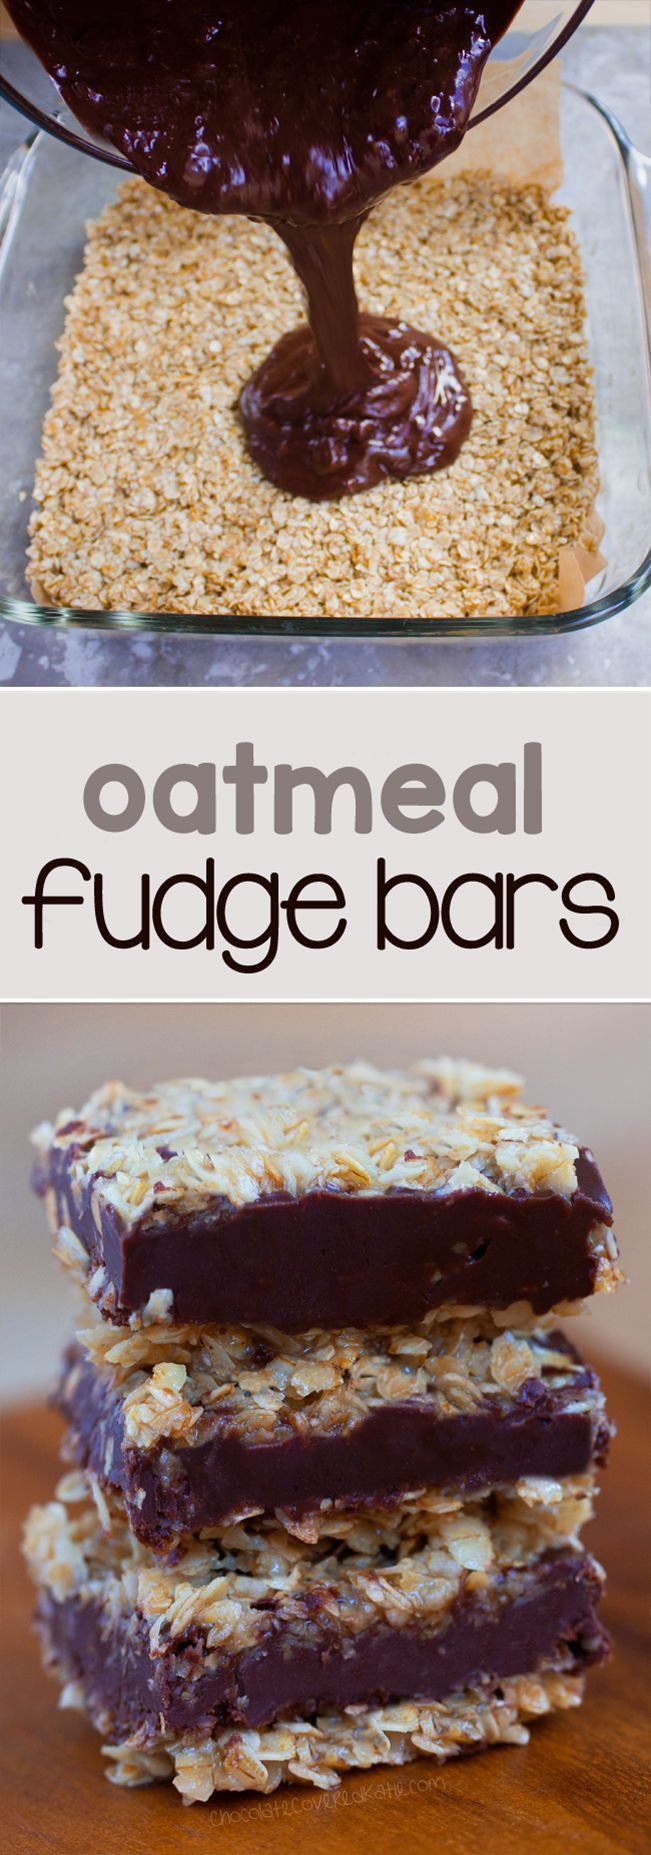 Oatmeal Fudge Bars - These gooey fudge bars are ADDICTIVE!!! ... Trust me, you should bookmark this recipe... I made two trays, and both were gone within an hour! ... @choccoveredkt http://chocolatecoveredkatie.com/2016/02/08/oatmeal-chocolate-fudge-bars/